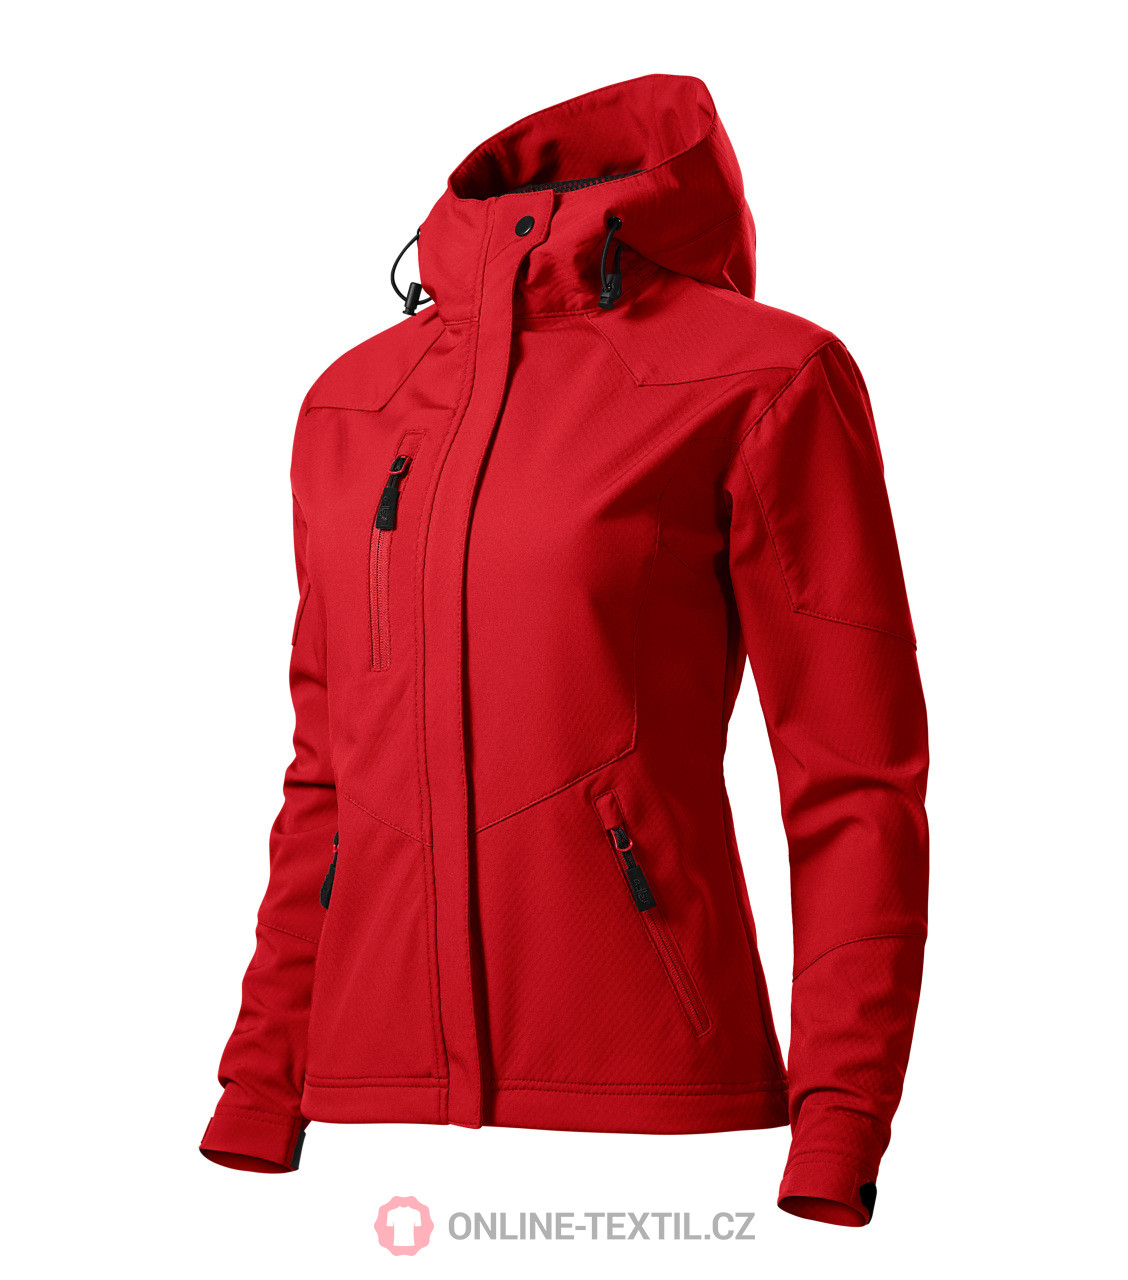 Red Nano With Light Softshell And Ladies Hood Nanotex® Jacket Finish 1lc3uFKJT5